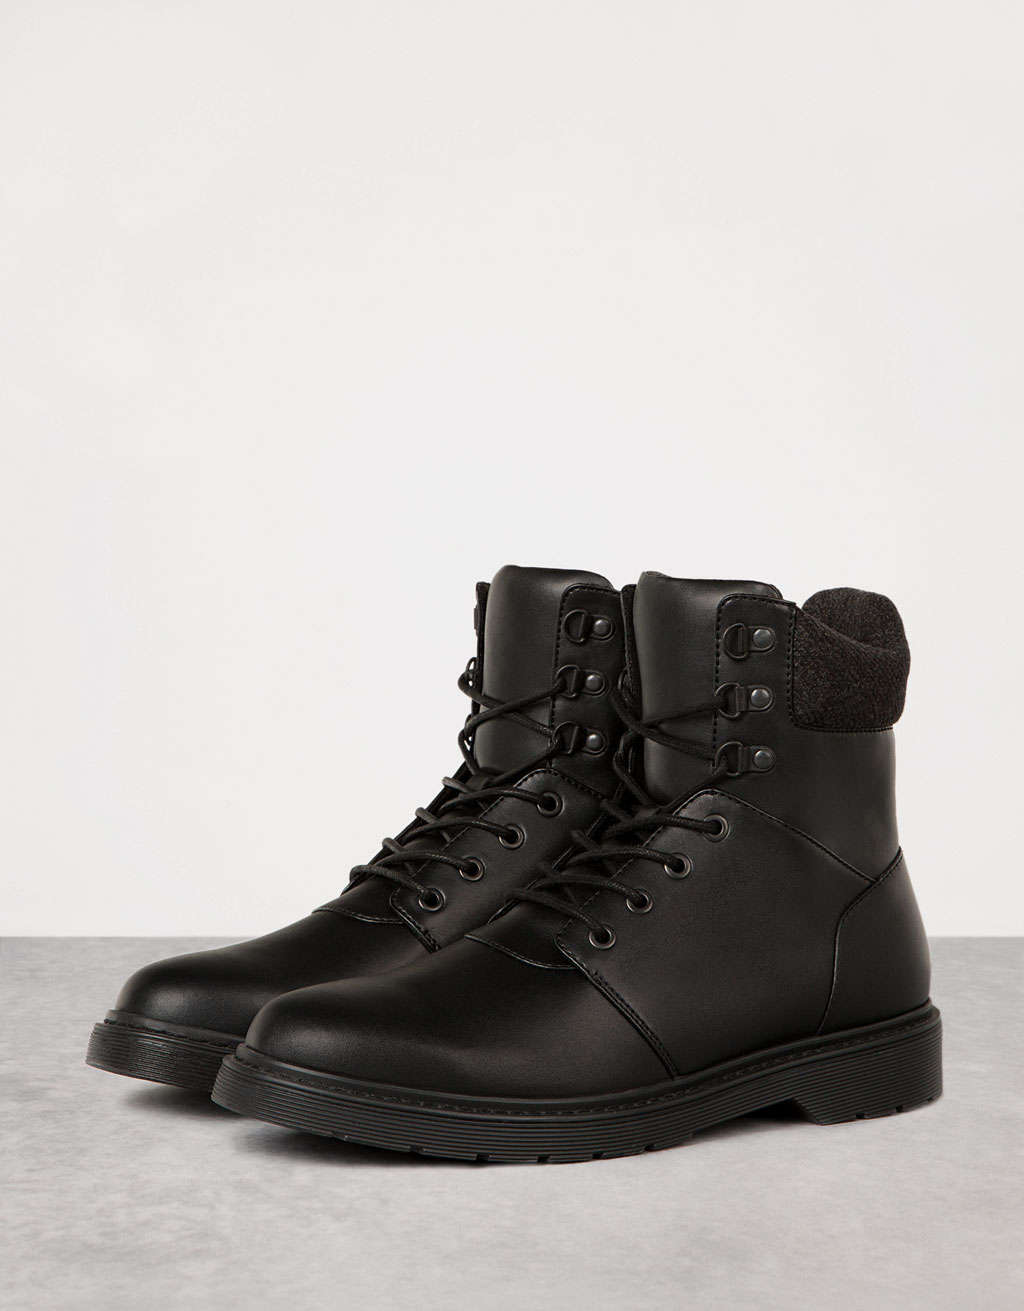 Men's fur-lined fabric top boots